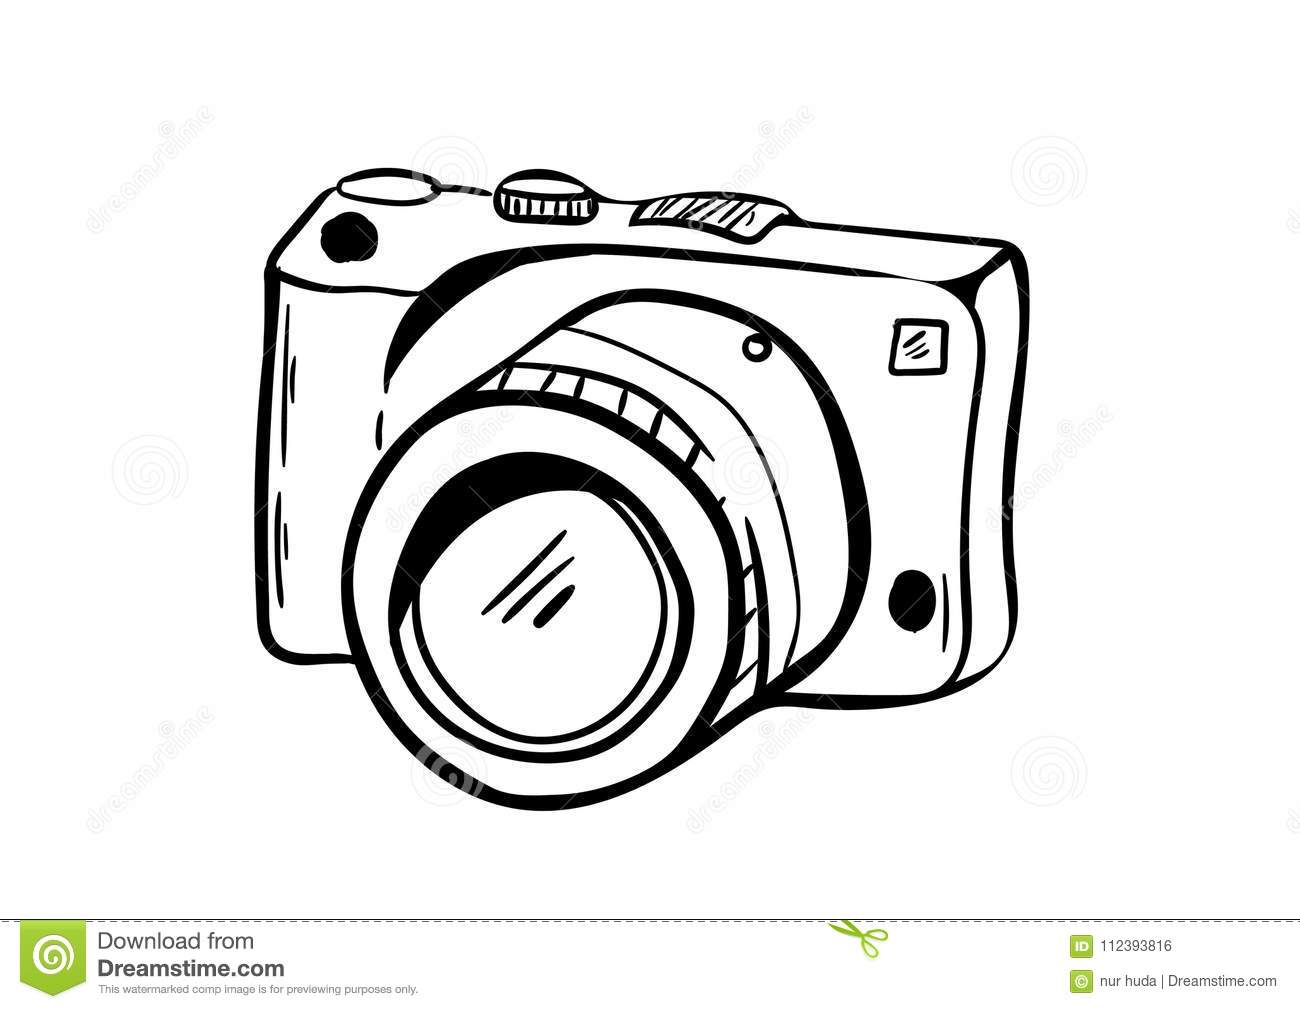 Camera Icon Vector With Doodle Style Stock Illustration - Illustration of drawn, drawing: 112393816